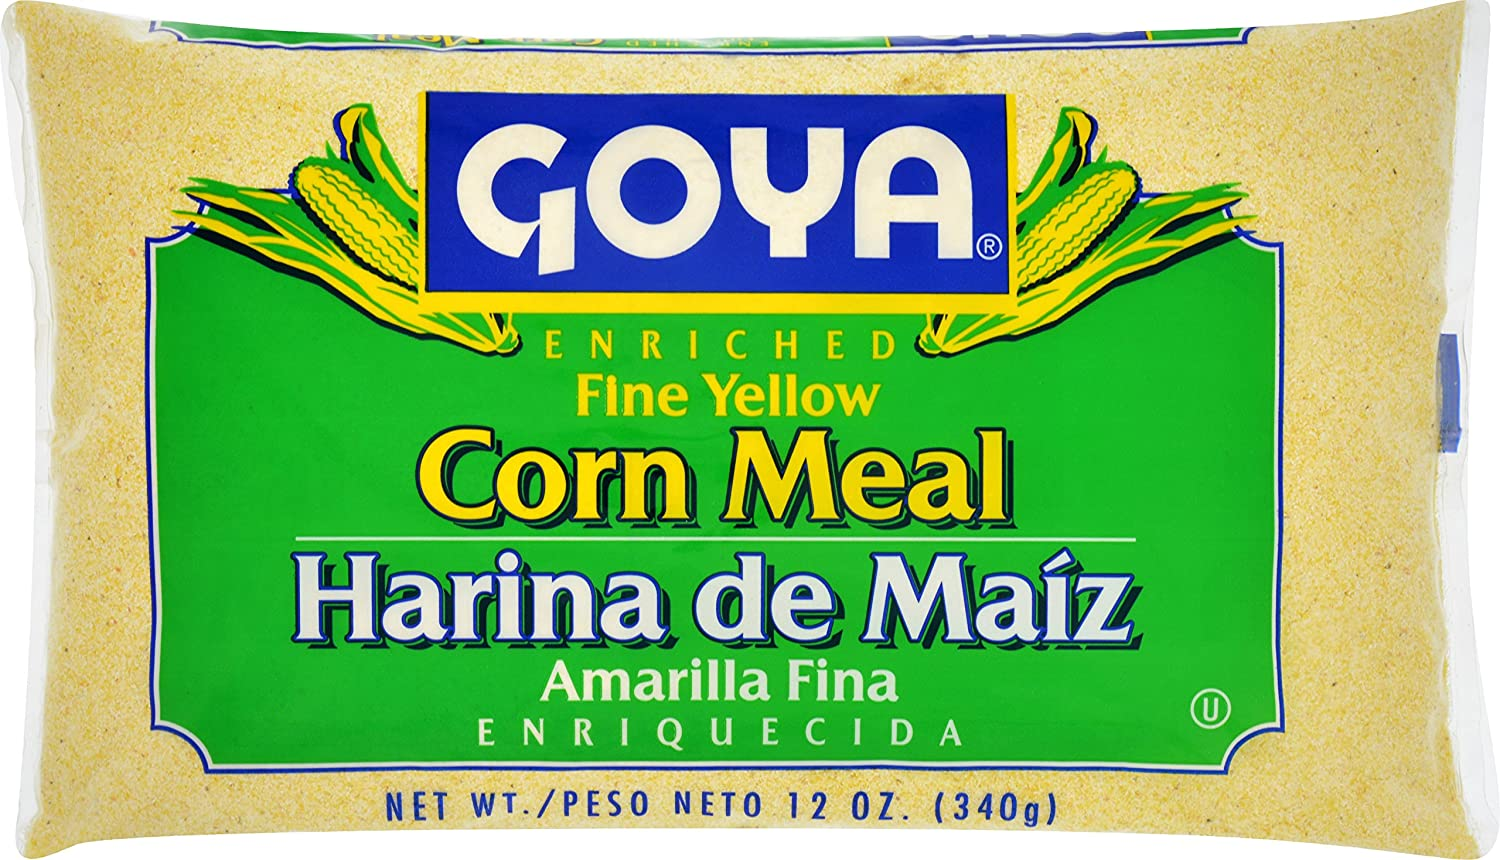 Amazon.com : Goya Foods Extra Fine Yellow Corn Flour, 24-Ounce (Pack of 12) : Corn Meals : Grocery & Gourmet Food